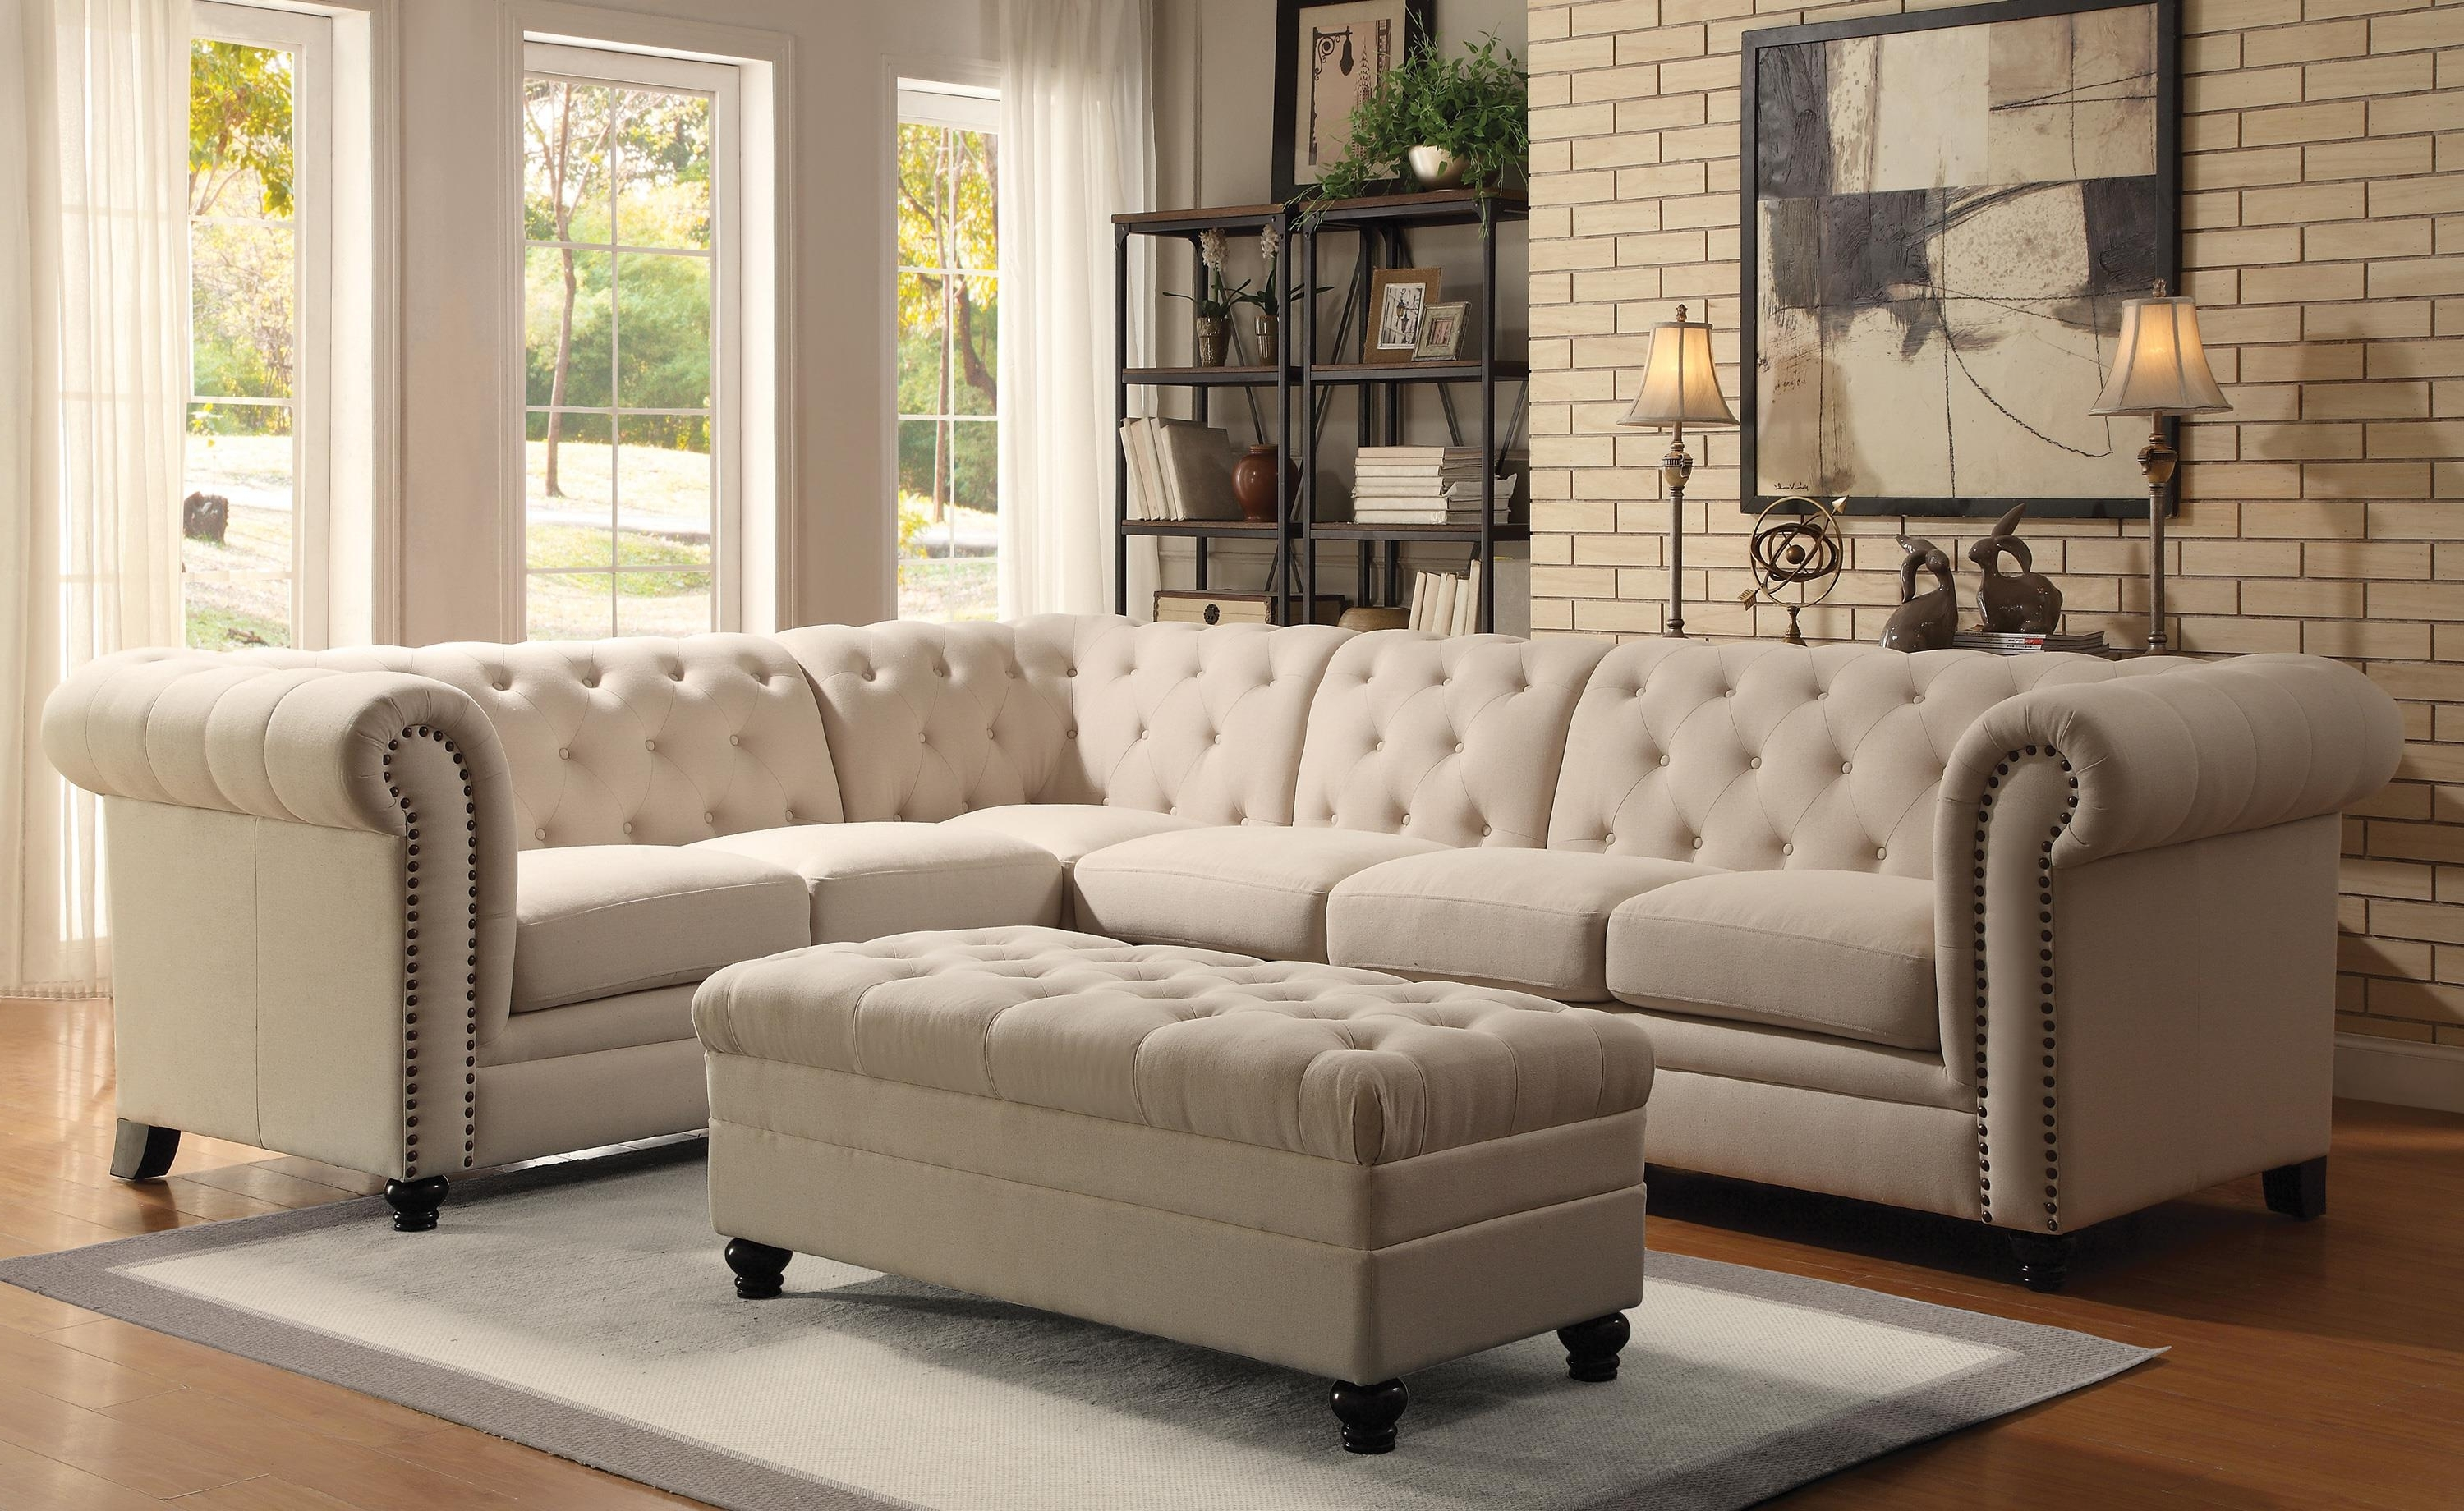 A1 Regarding Janesville Wi Sectional Sofas (View 15 of 20)